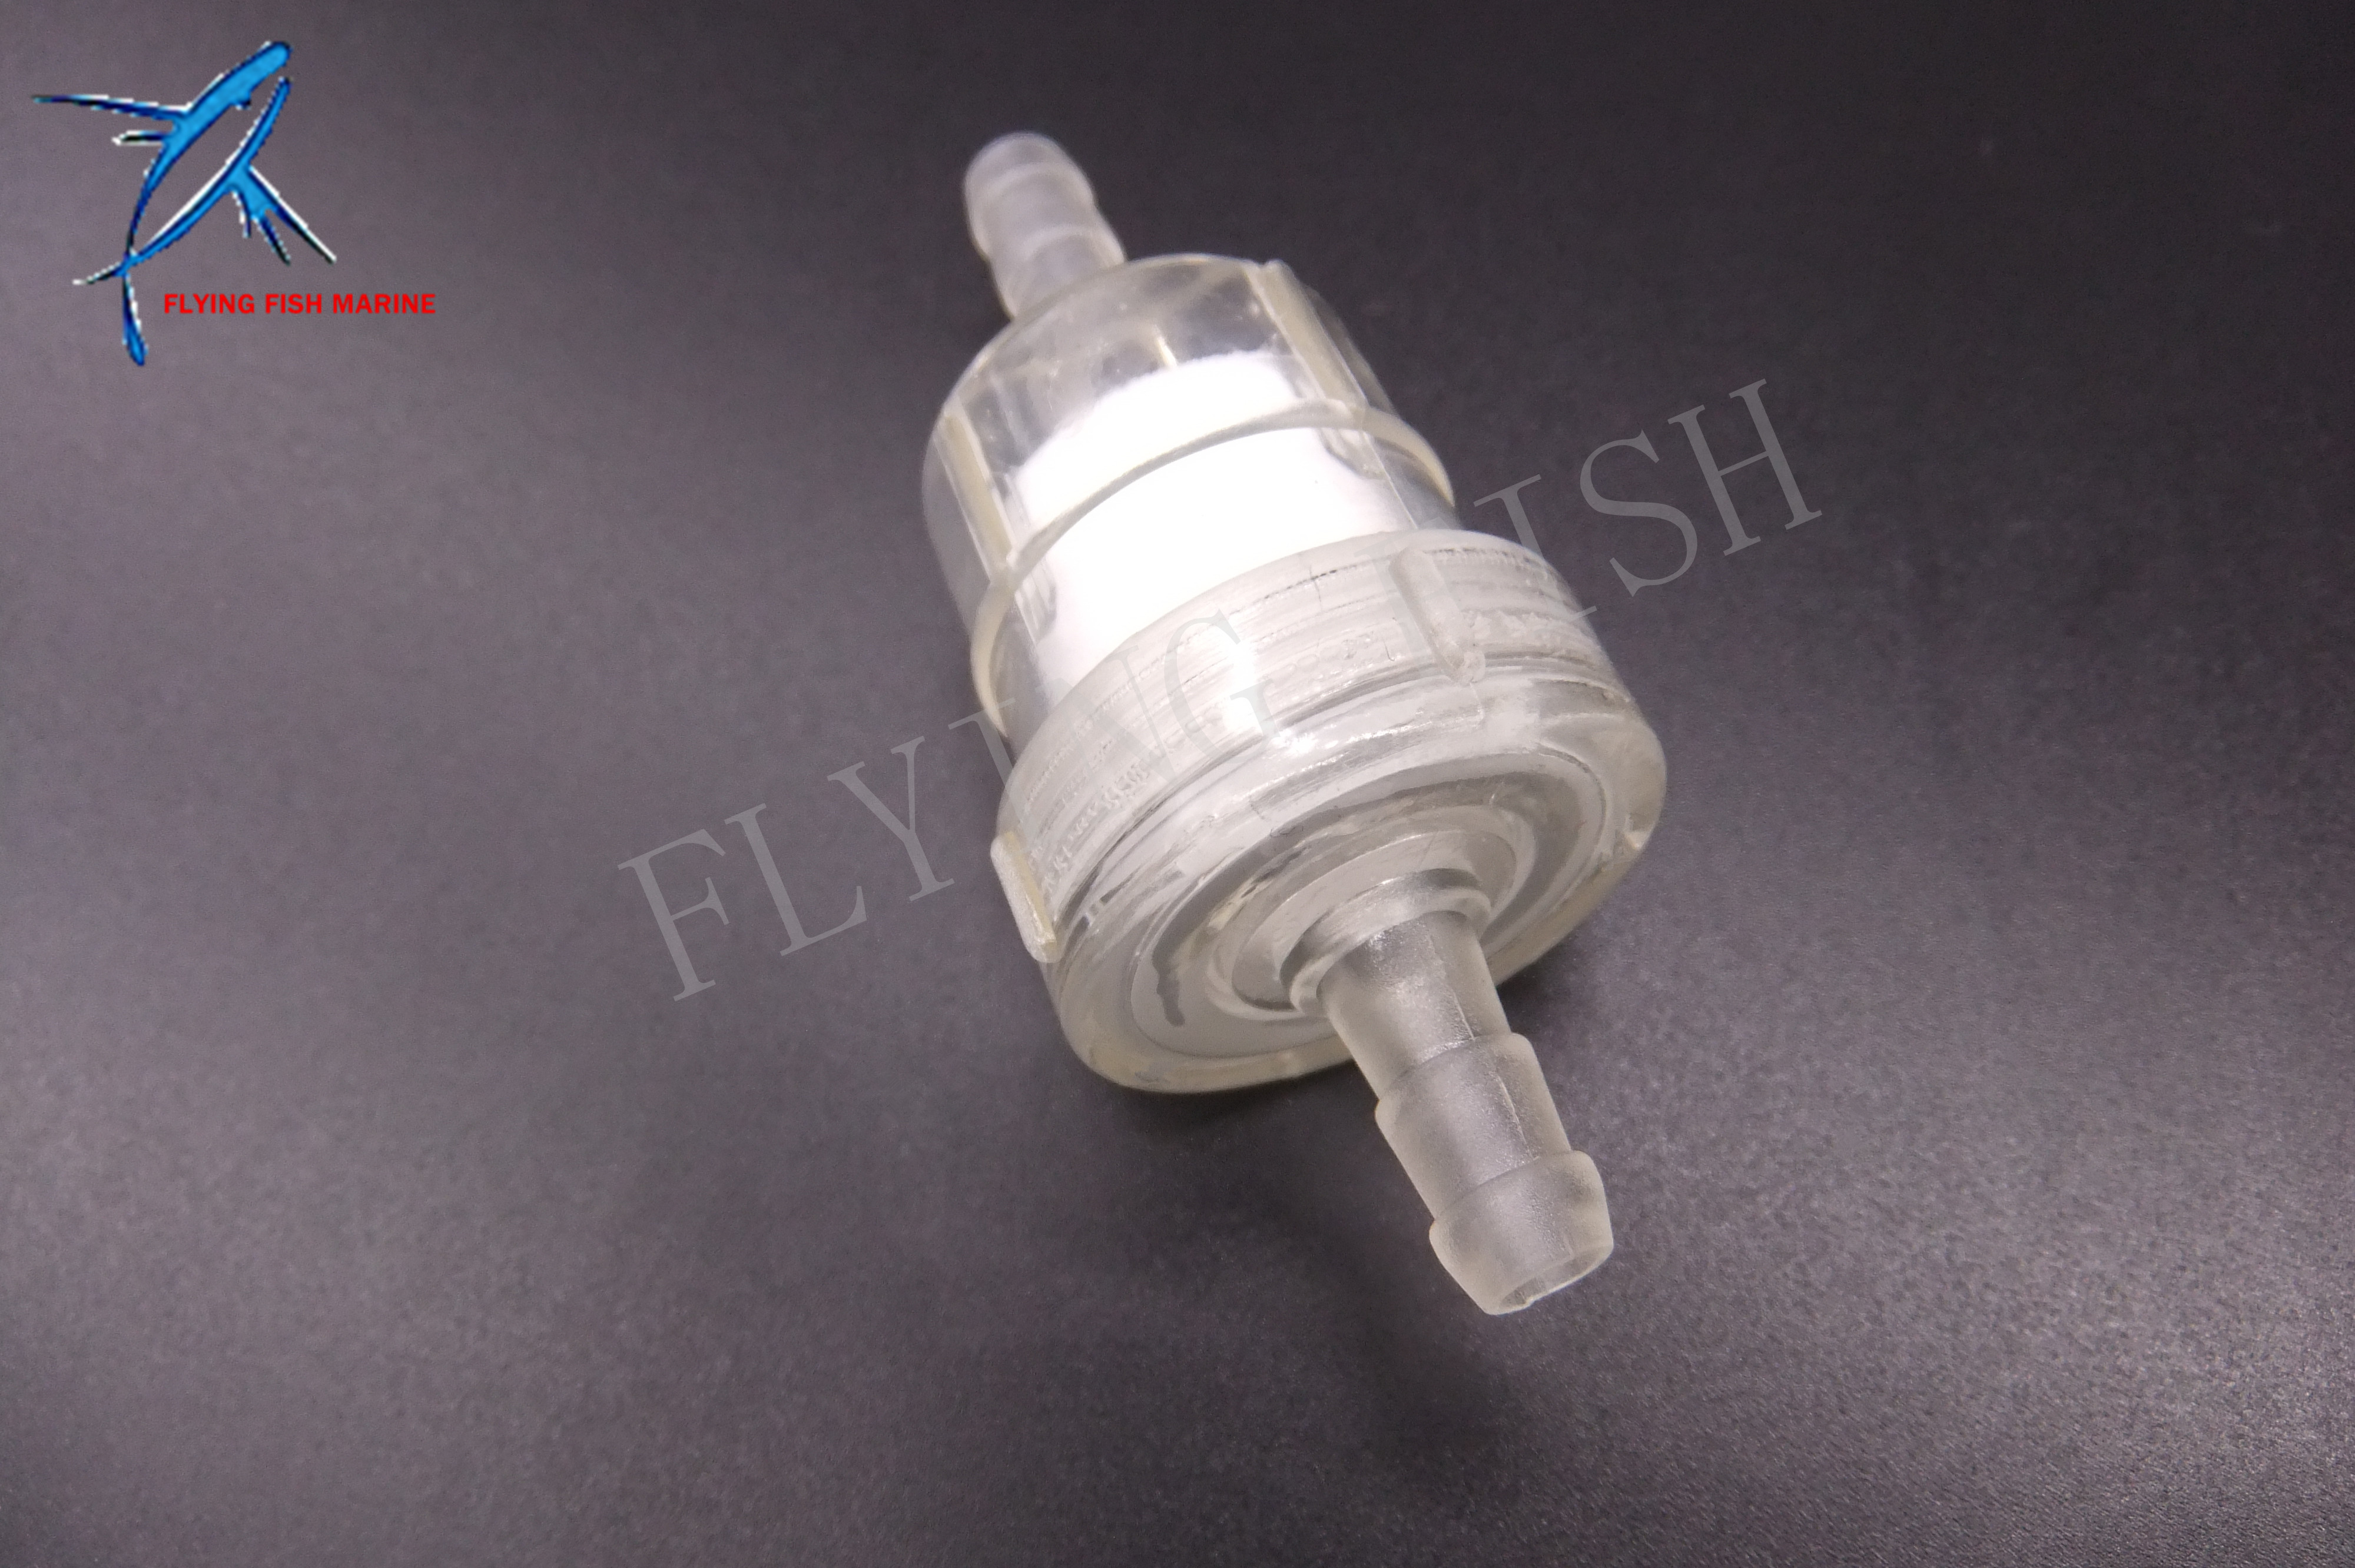 Outboard Engine Inline Fuel Filter for Tohatsu Nissan 369 02230 0 35 16248,  for Mercury Marine 35 80365M, for Yamaha 646 24251-in Boat Engine from ...